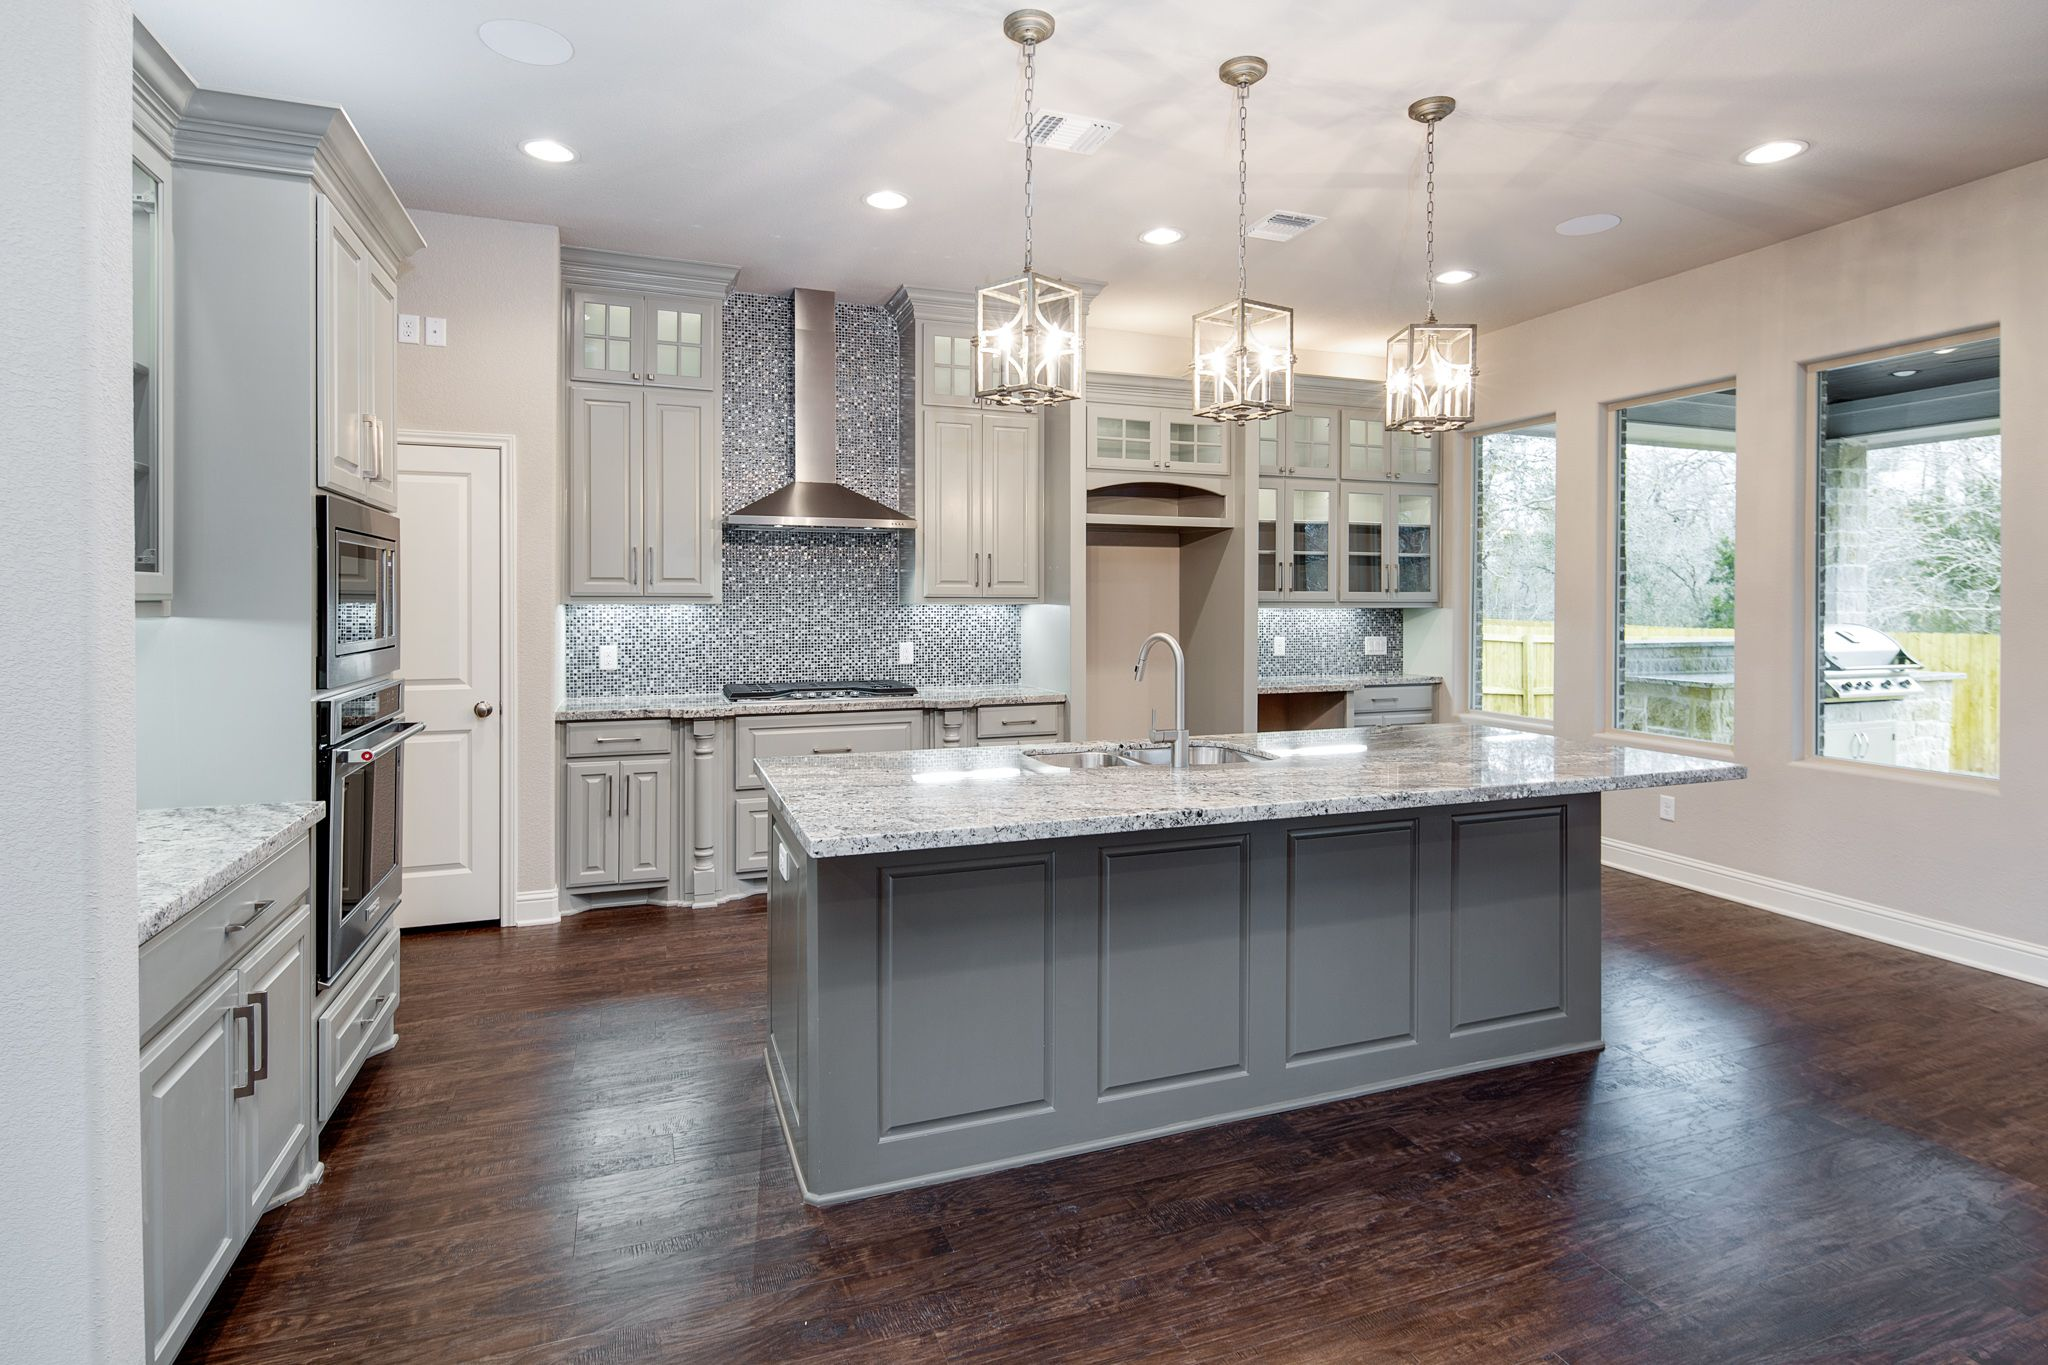 SW Nebulous Gray Outer Cabinets, SW Misty Bayou Painted Island, Sucuri  Granite Countertops,